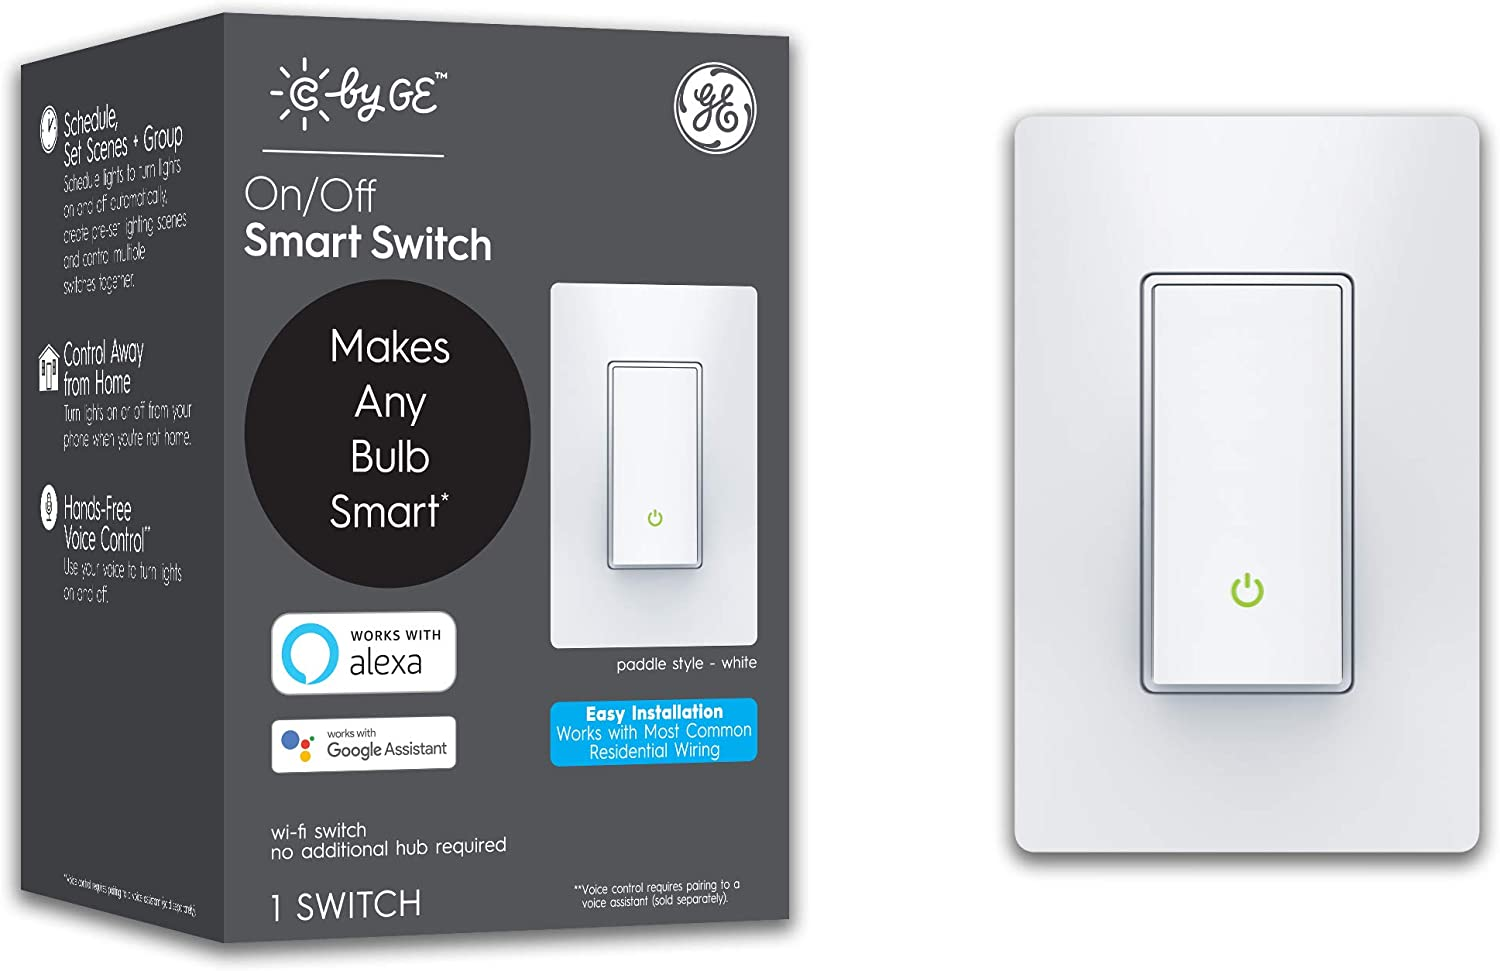 C by GE On/Off 3-Wire Smart Switch - Works with Alexa + Google Home Without Hub, Paddle Style Smart Switch, Single-Pole/3-Way Replacement, White